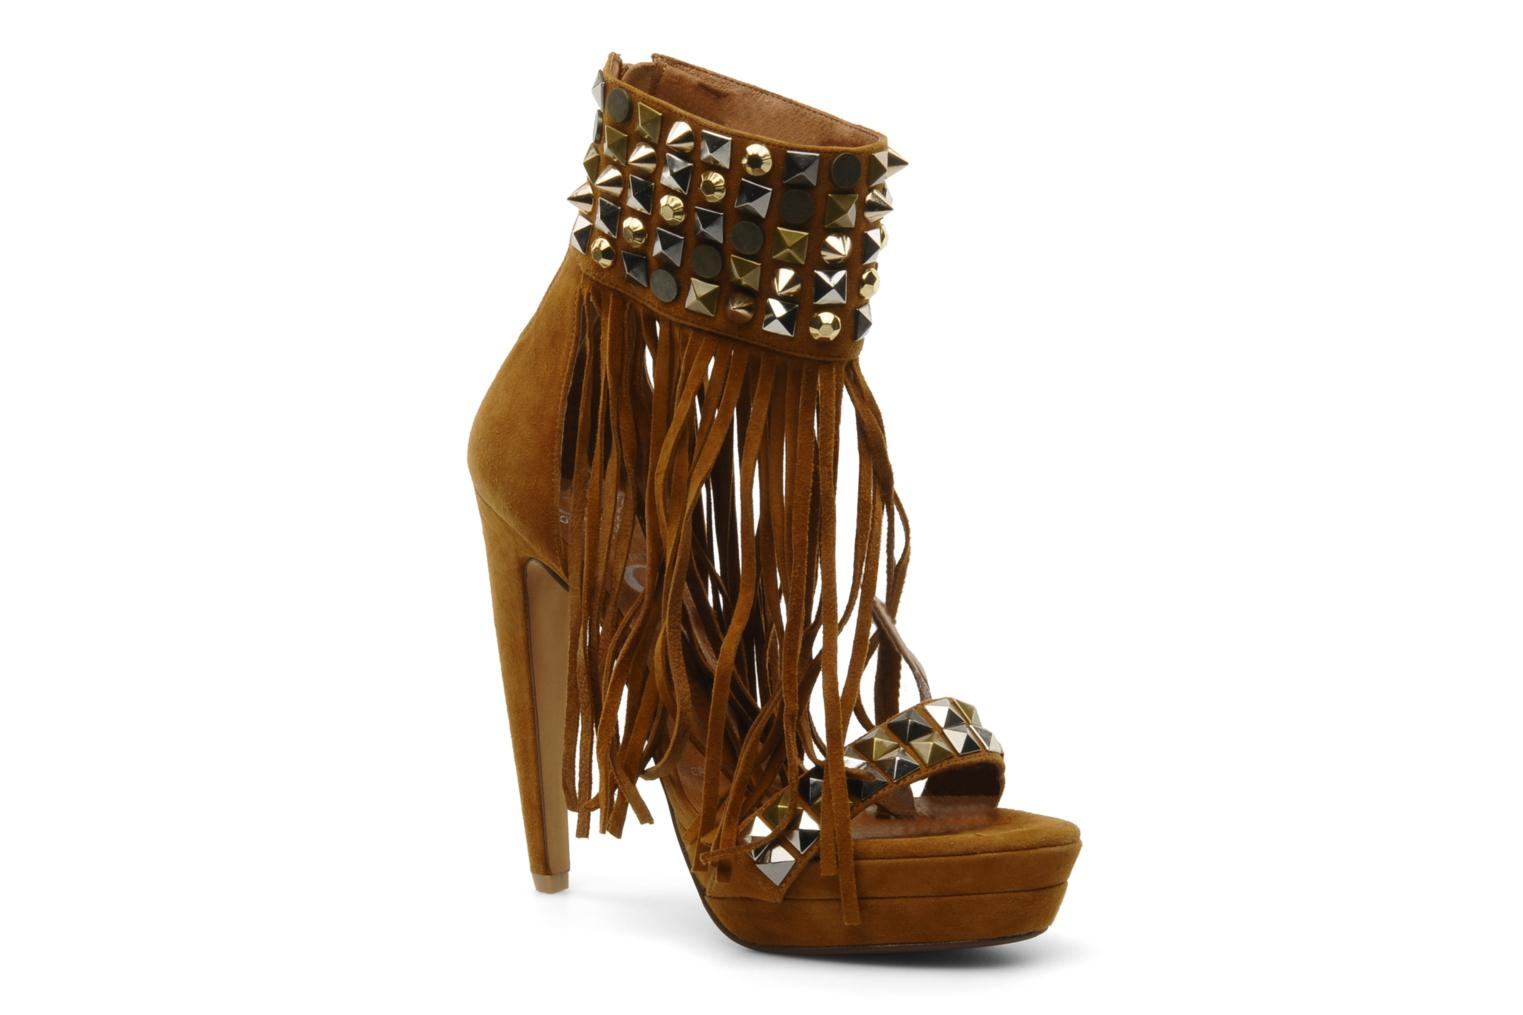 Marques Chaussure femme Jeffrey Campbell femme JC-35 Tan Suede